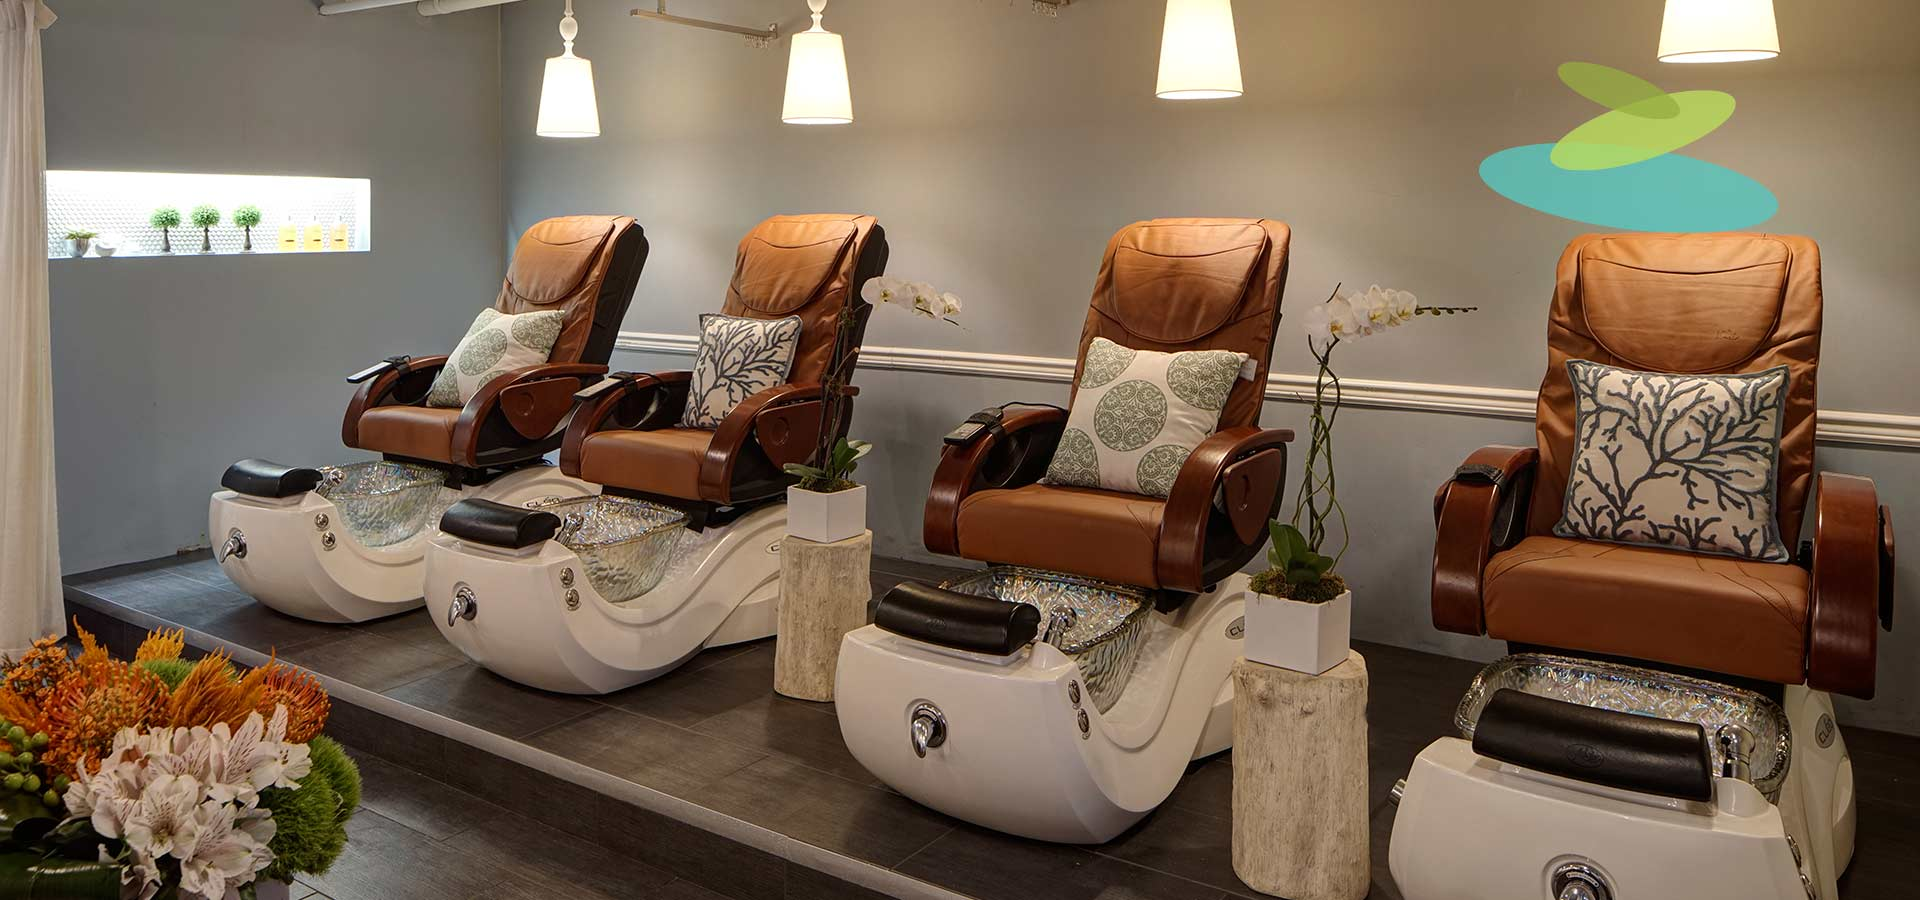 chicago day spa couples massage facials